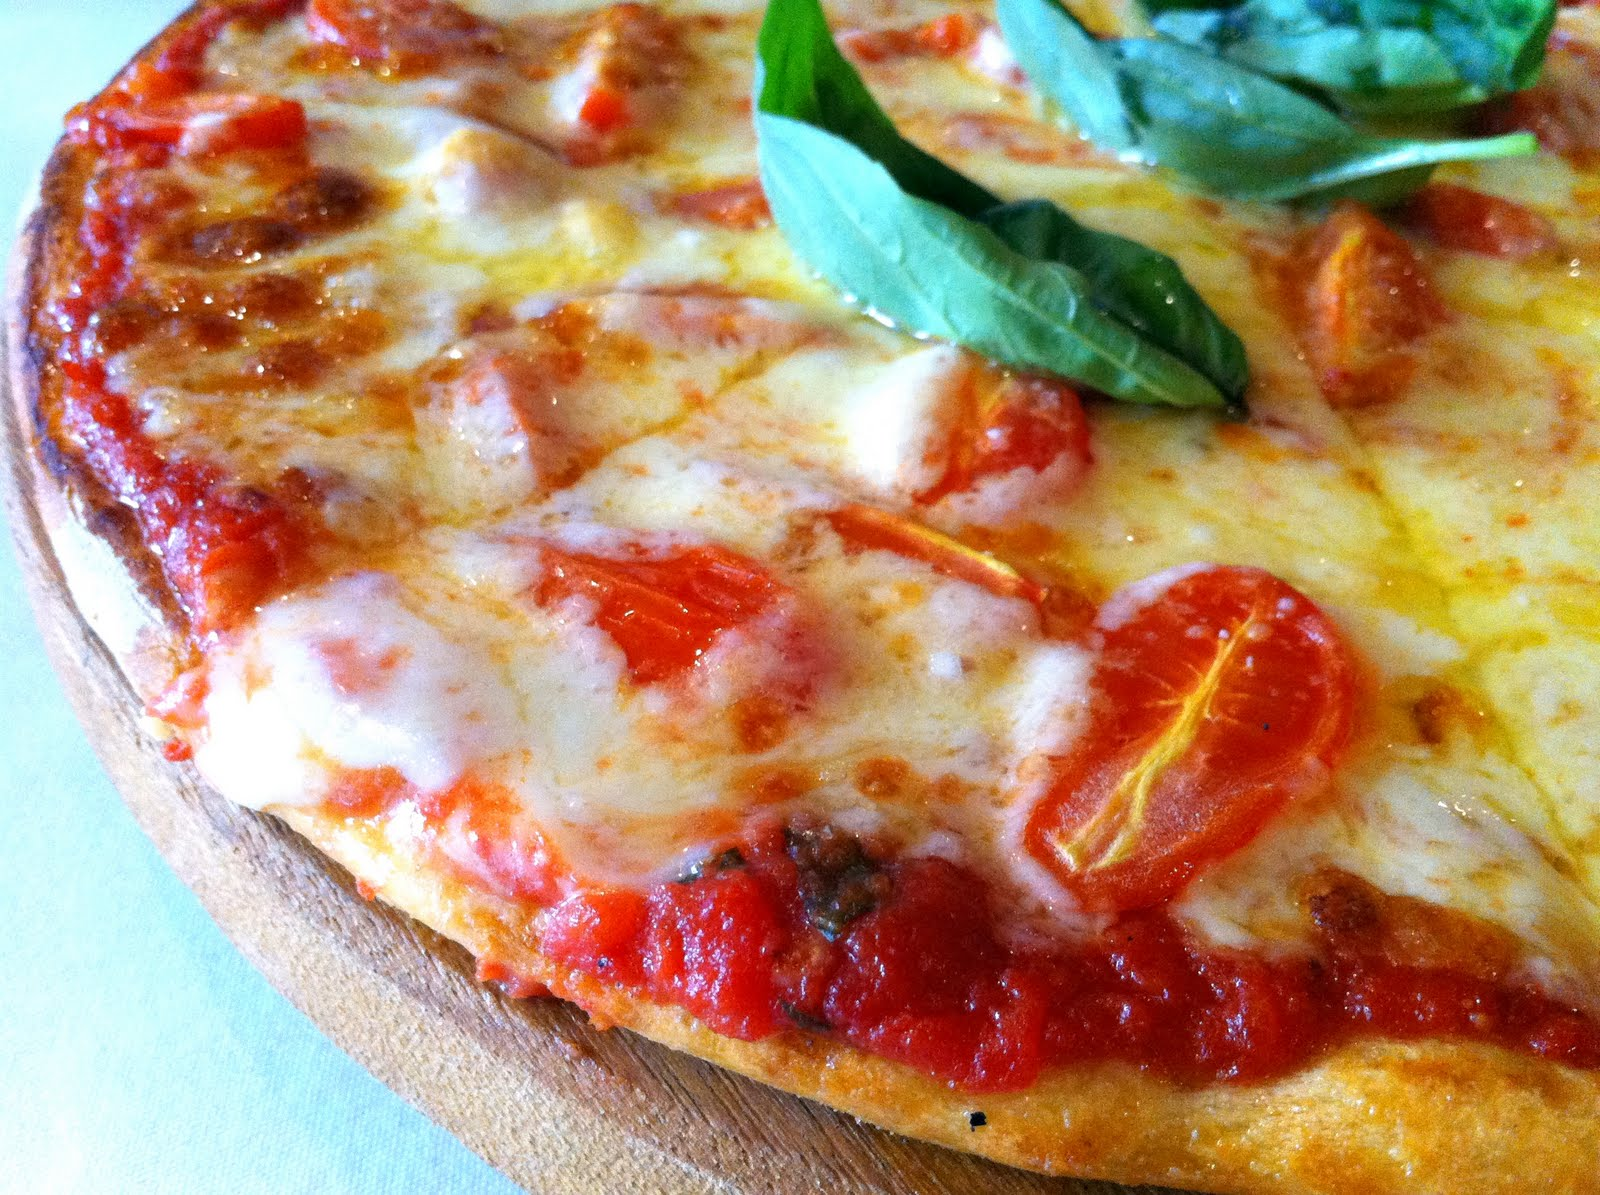 the margherita pizza was named after queen margherita of italy